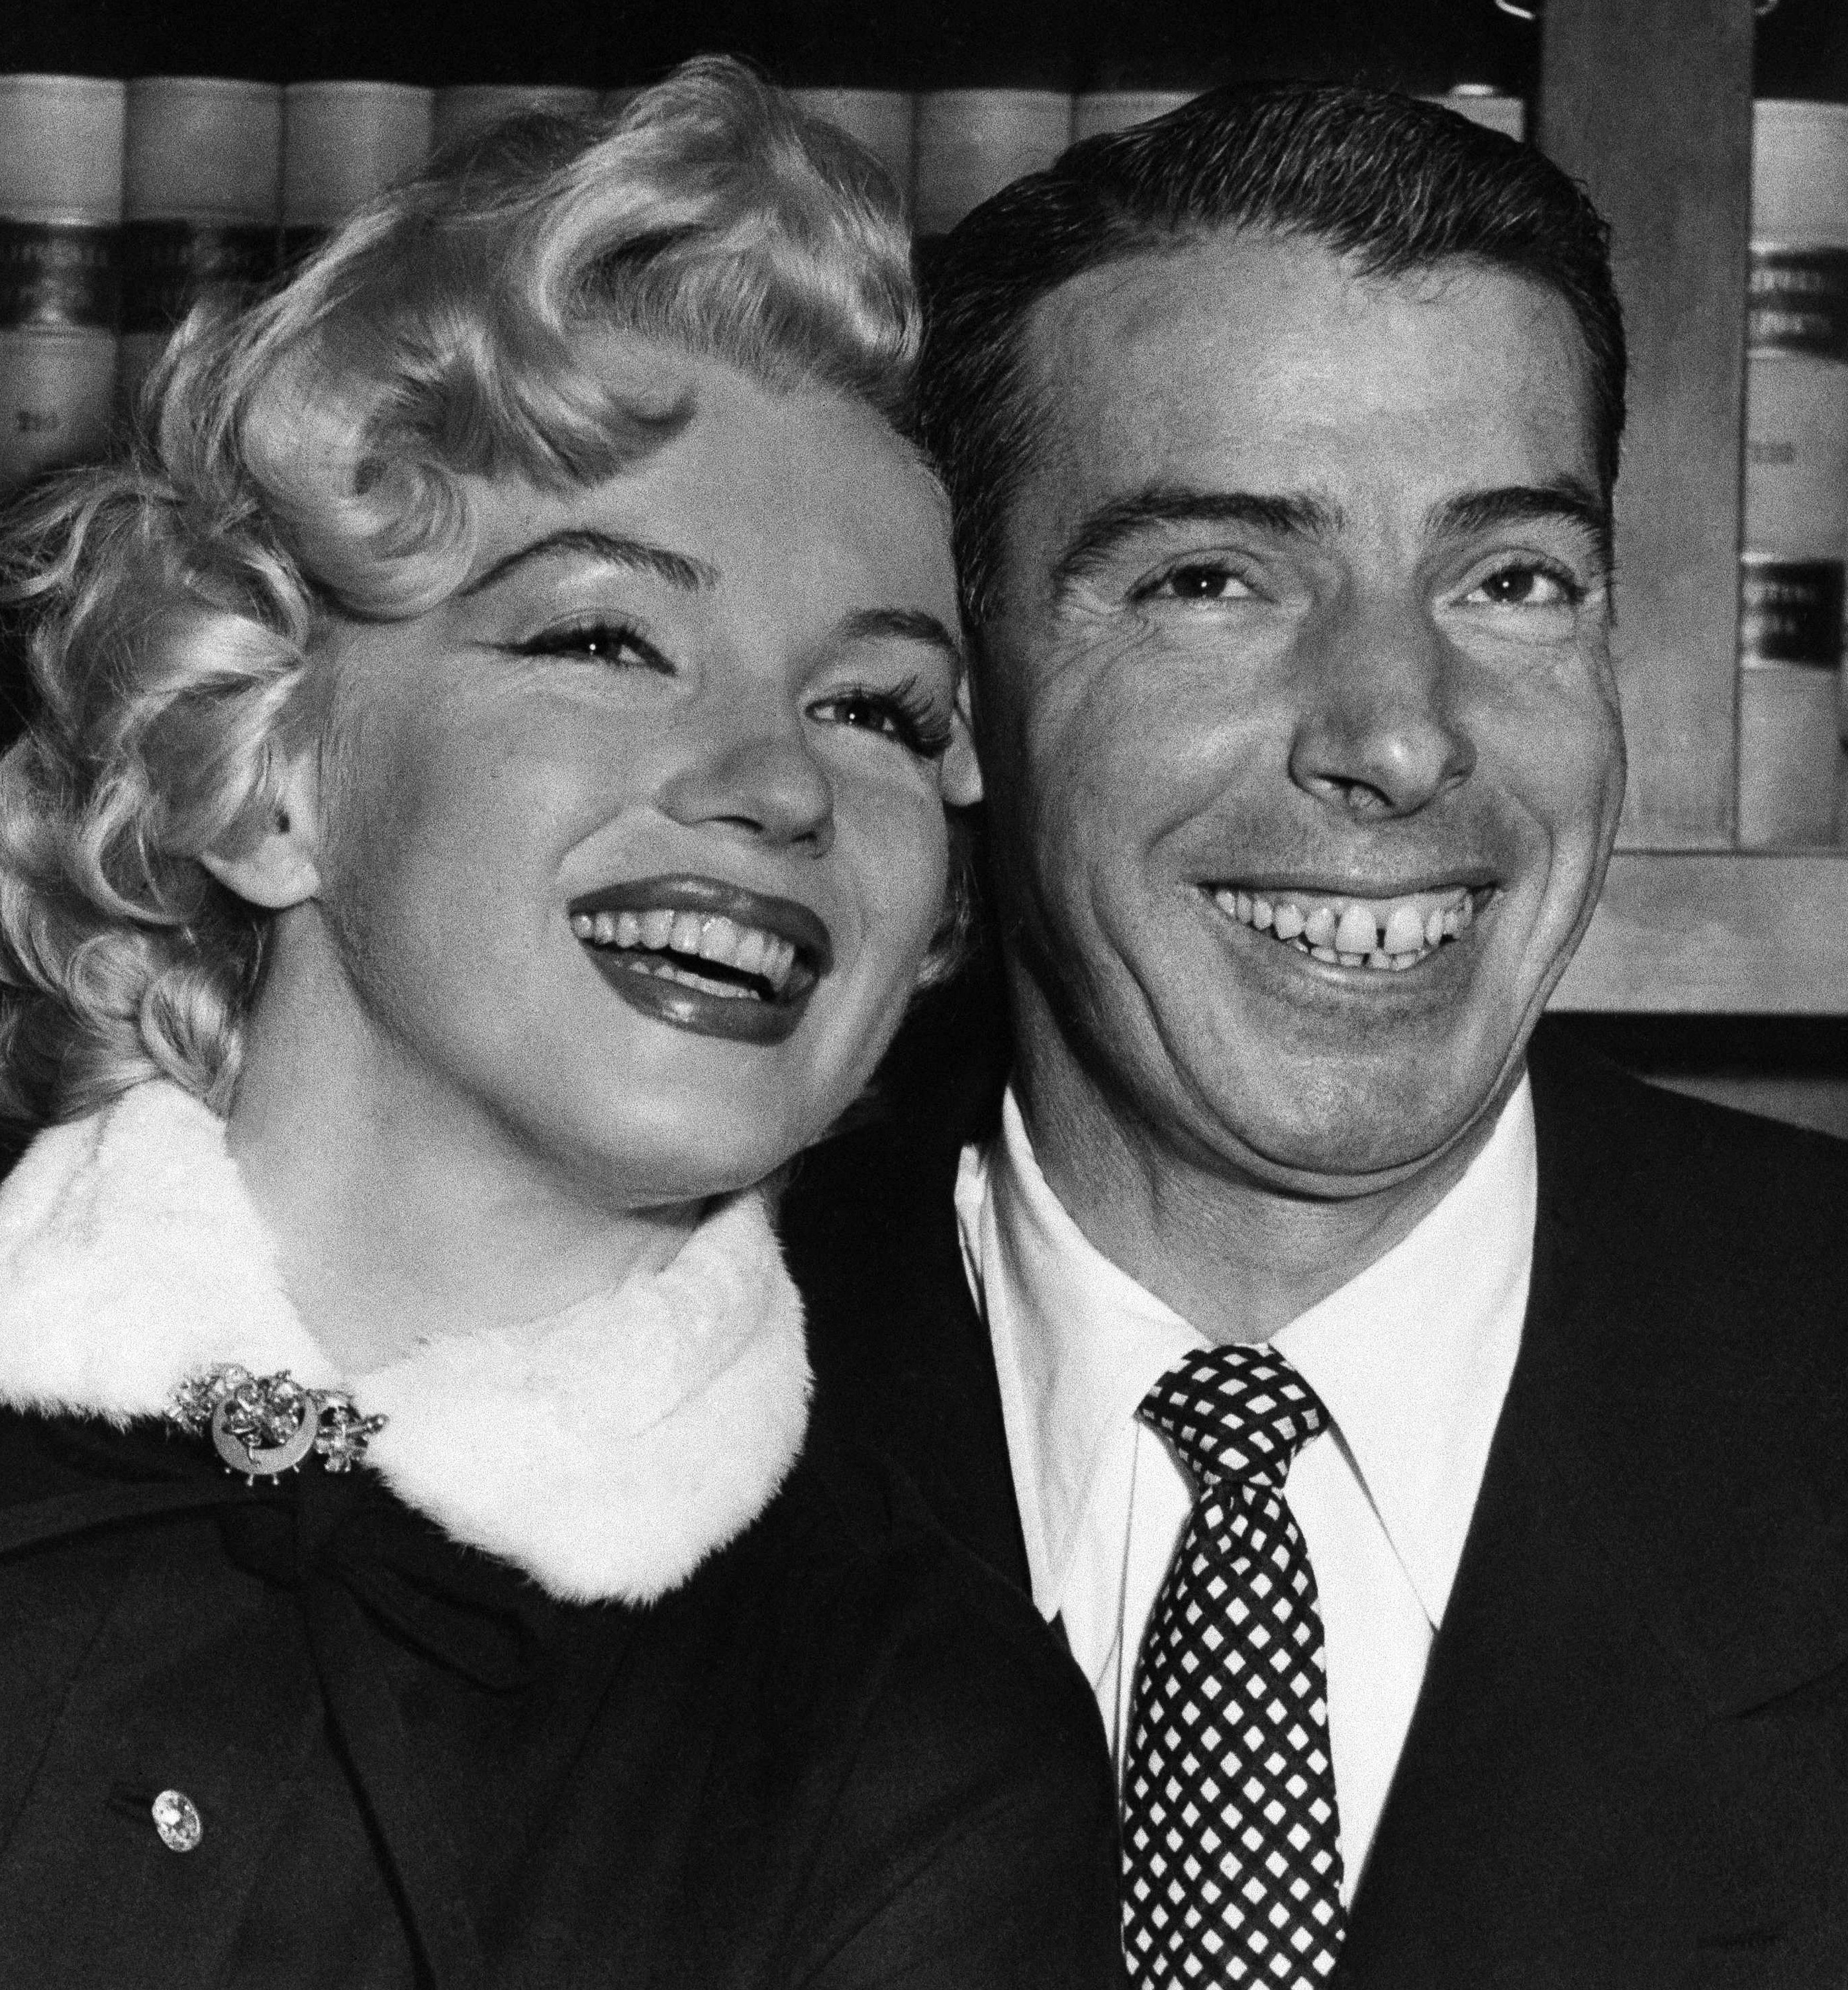 Marilyn Monroe's Love Letter to Joe DiMaggio in 1954.